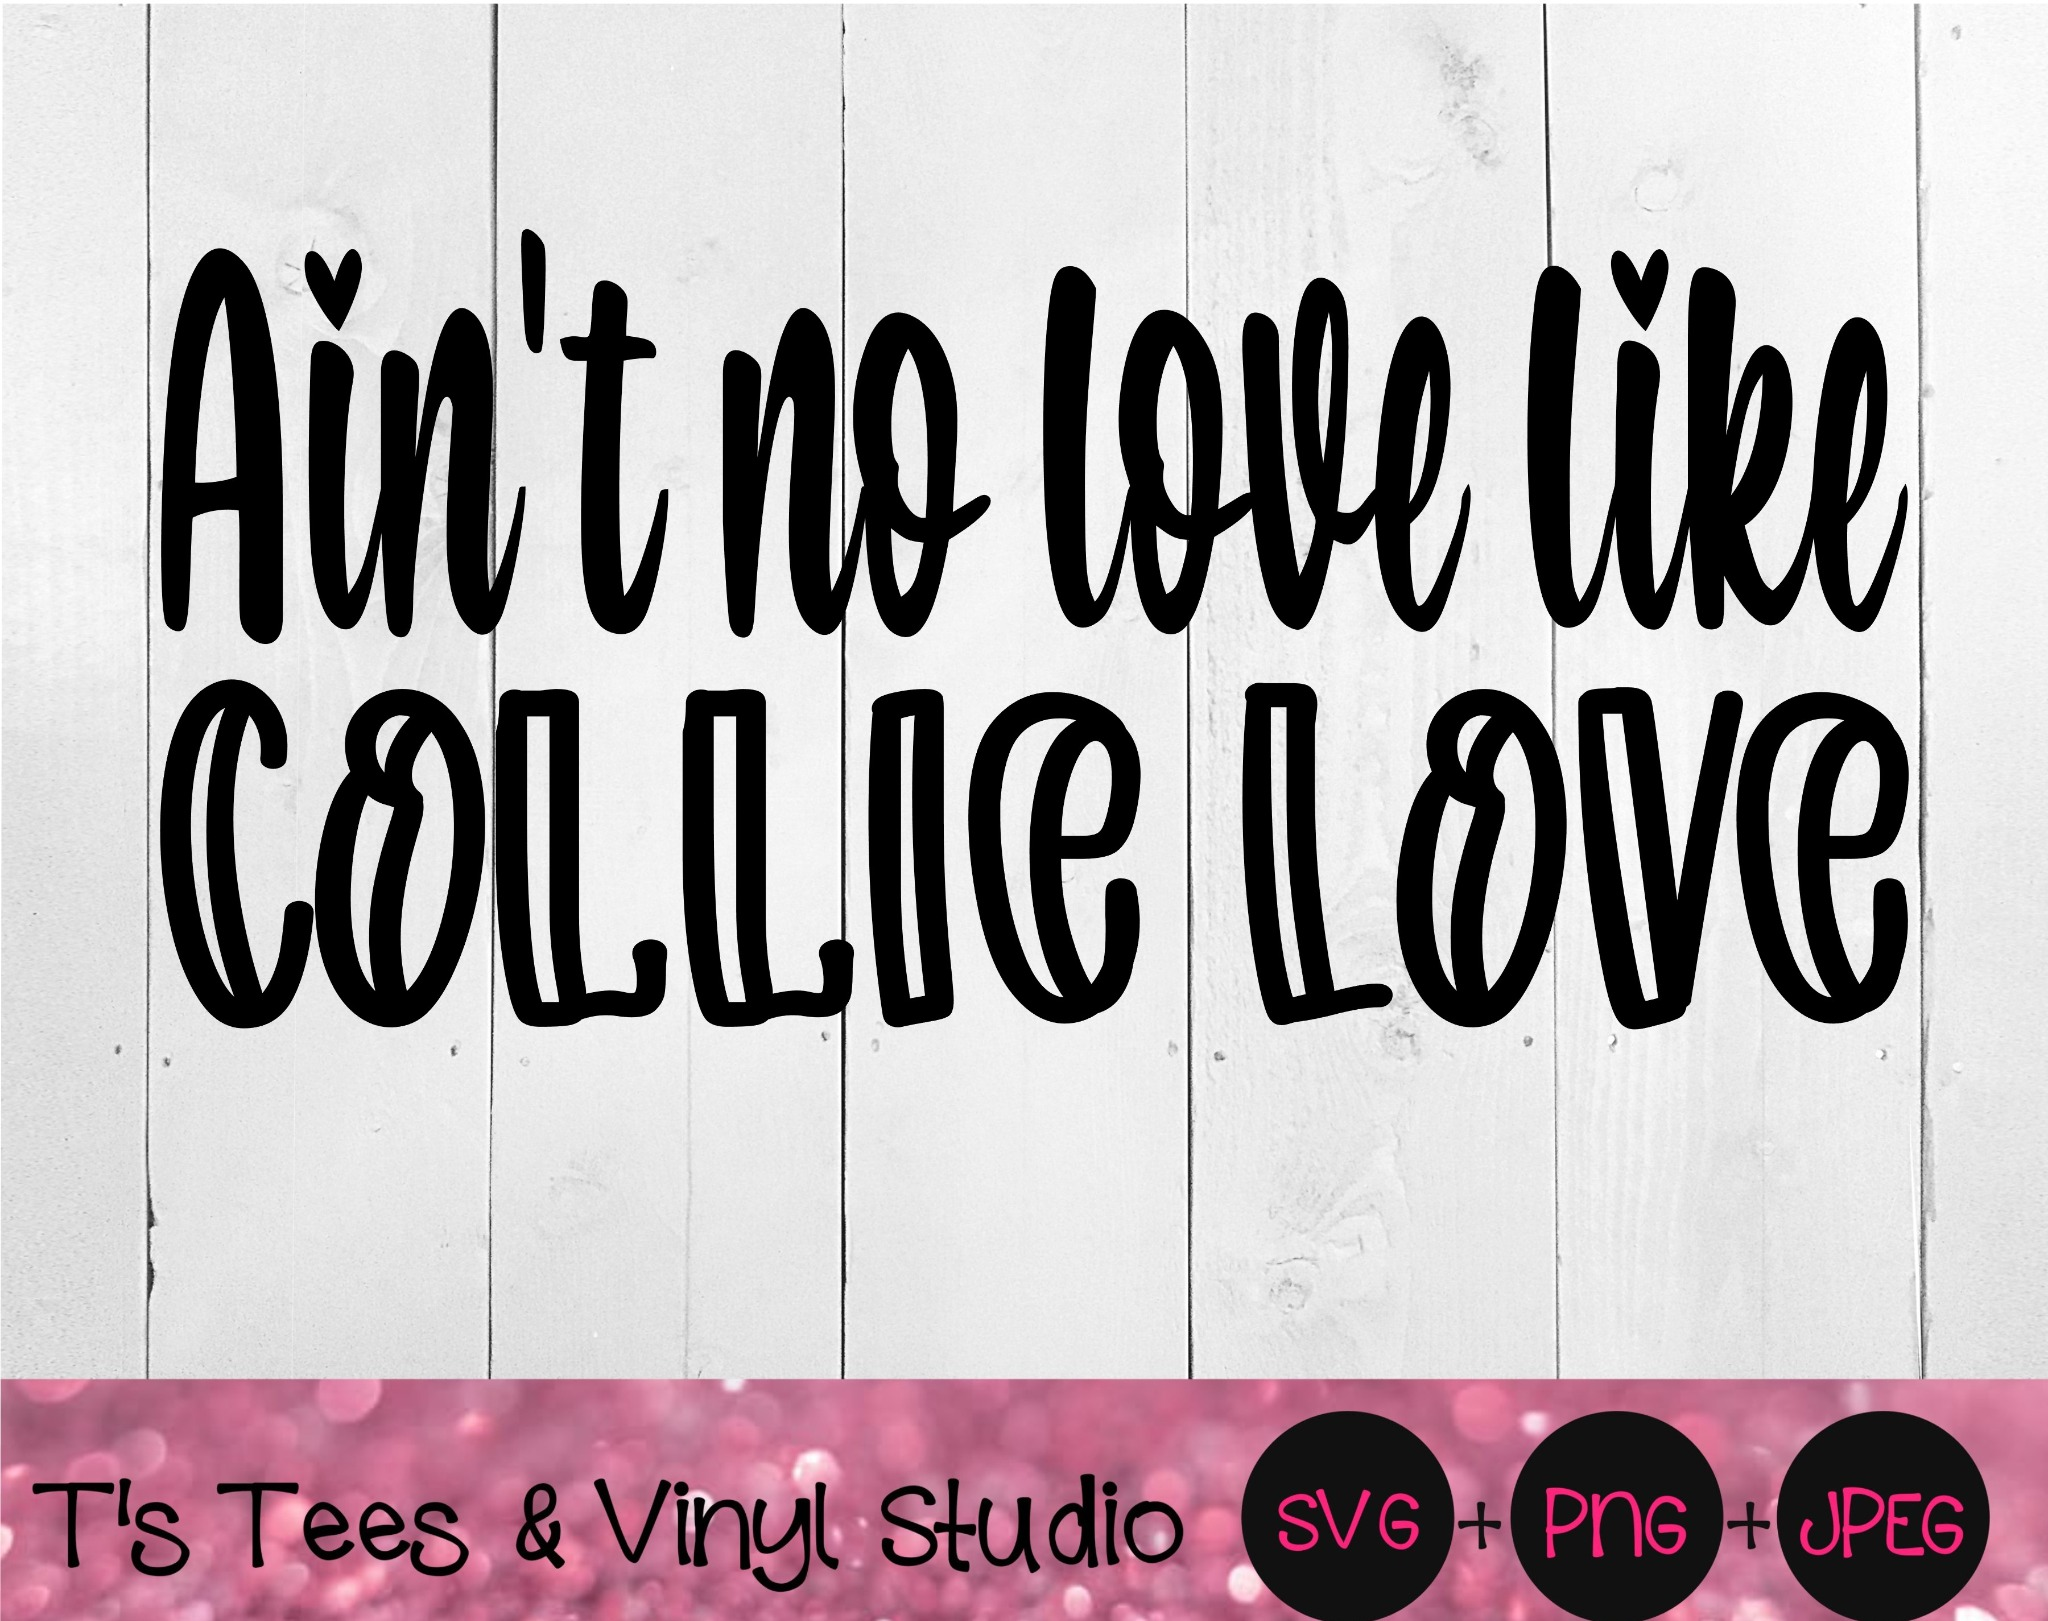 Ain't No Love Like Collie Love Svg, Collie Svg, Love Svg, Dog Love Svg, Herding Dog Png, Love My Dog